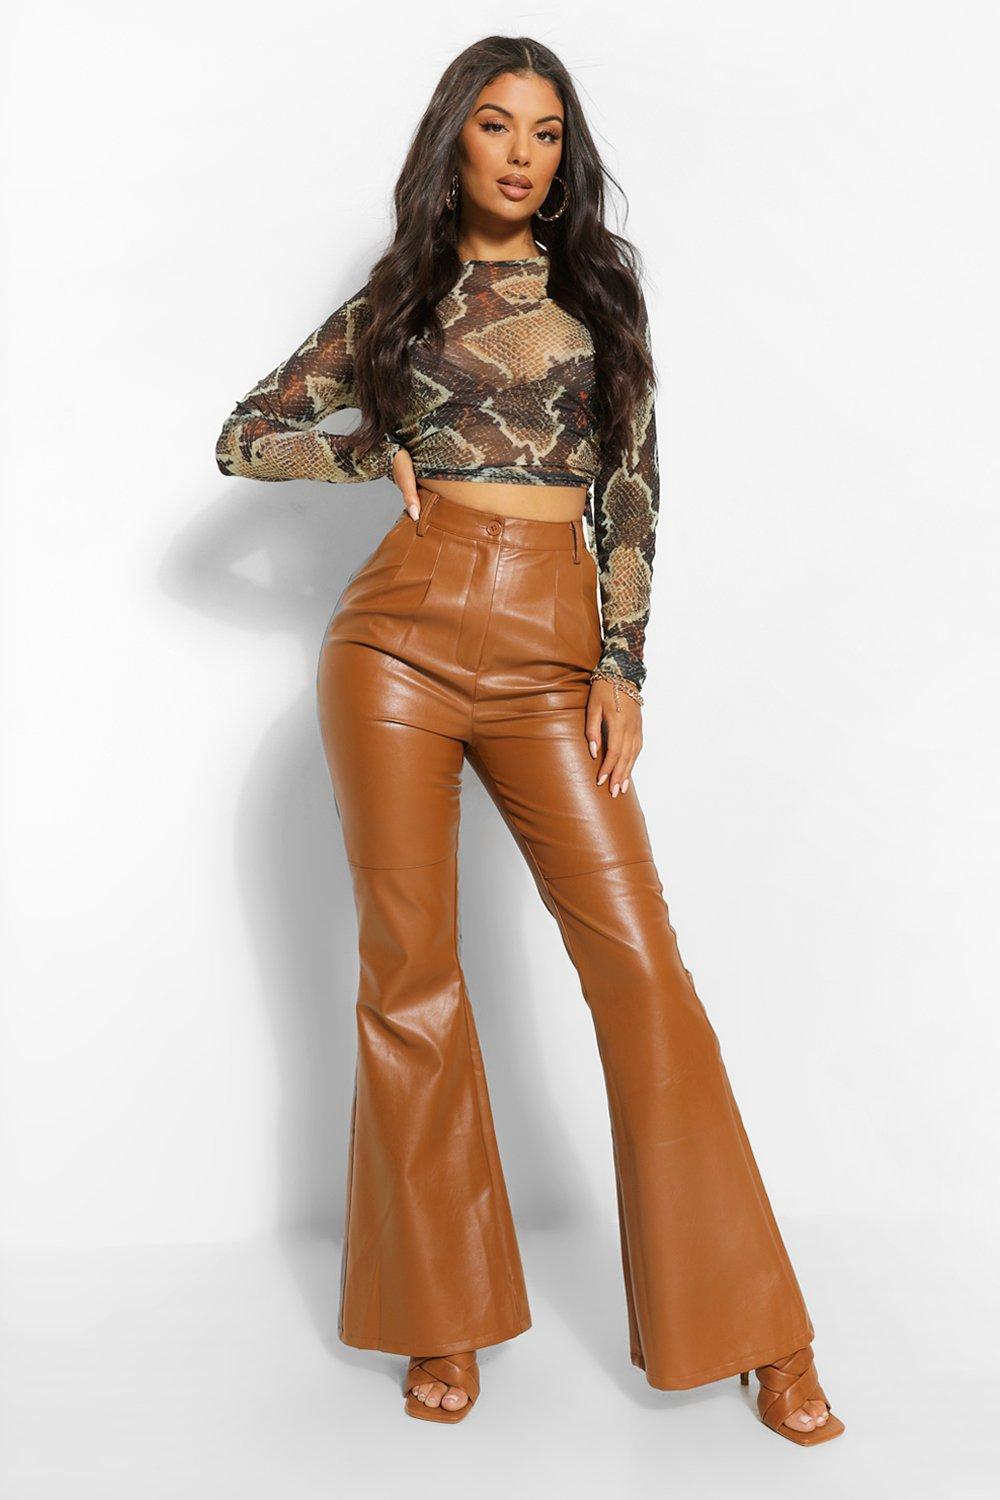 Vintage High Waisted Trousers, Sailor Pants, Jeans Womens High Waist Leather Look Flare - Brown - 12 $24.00 AT vintagedancer.com